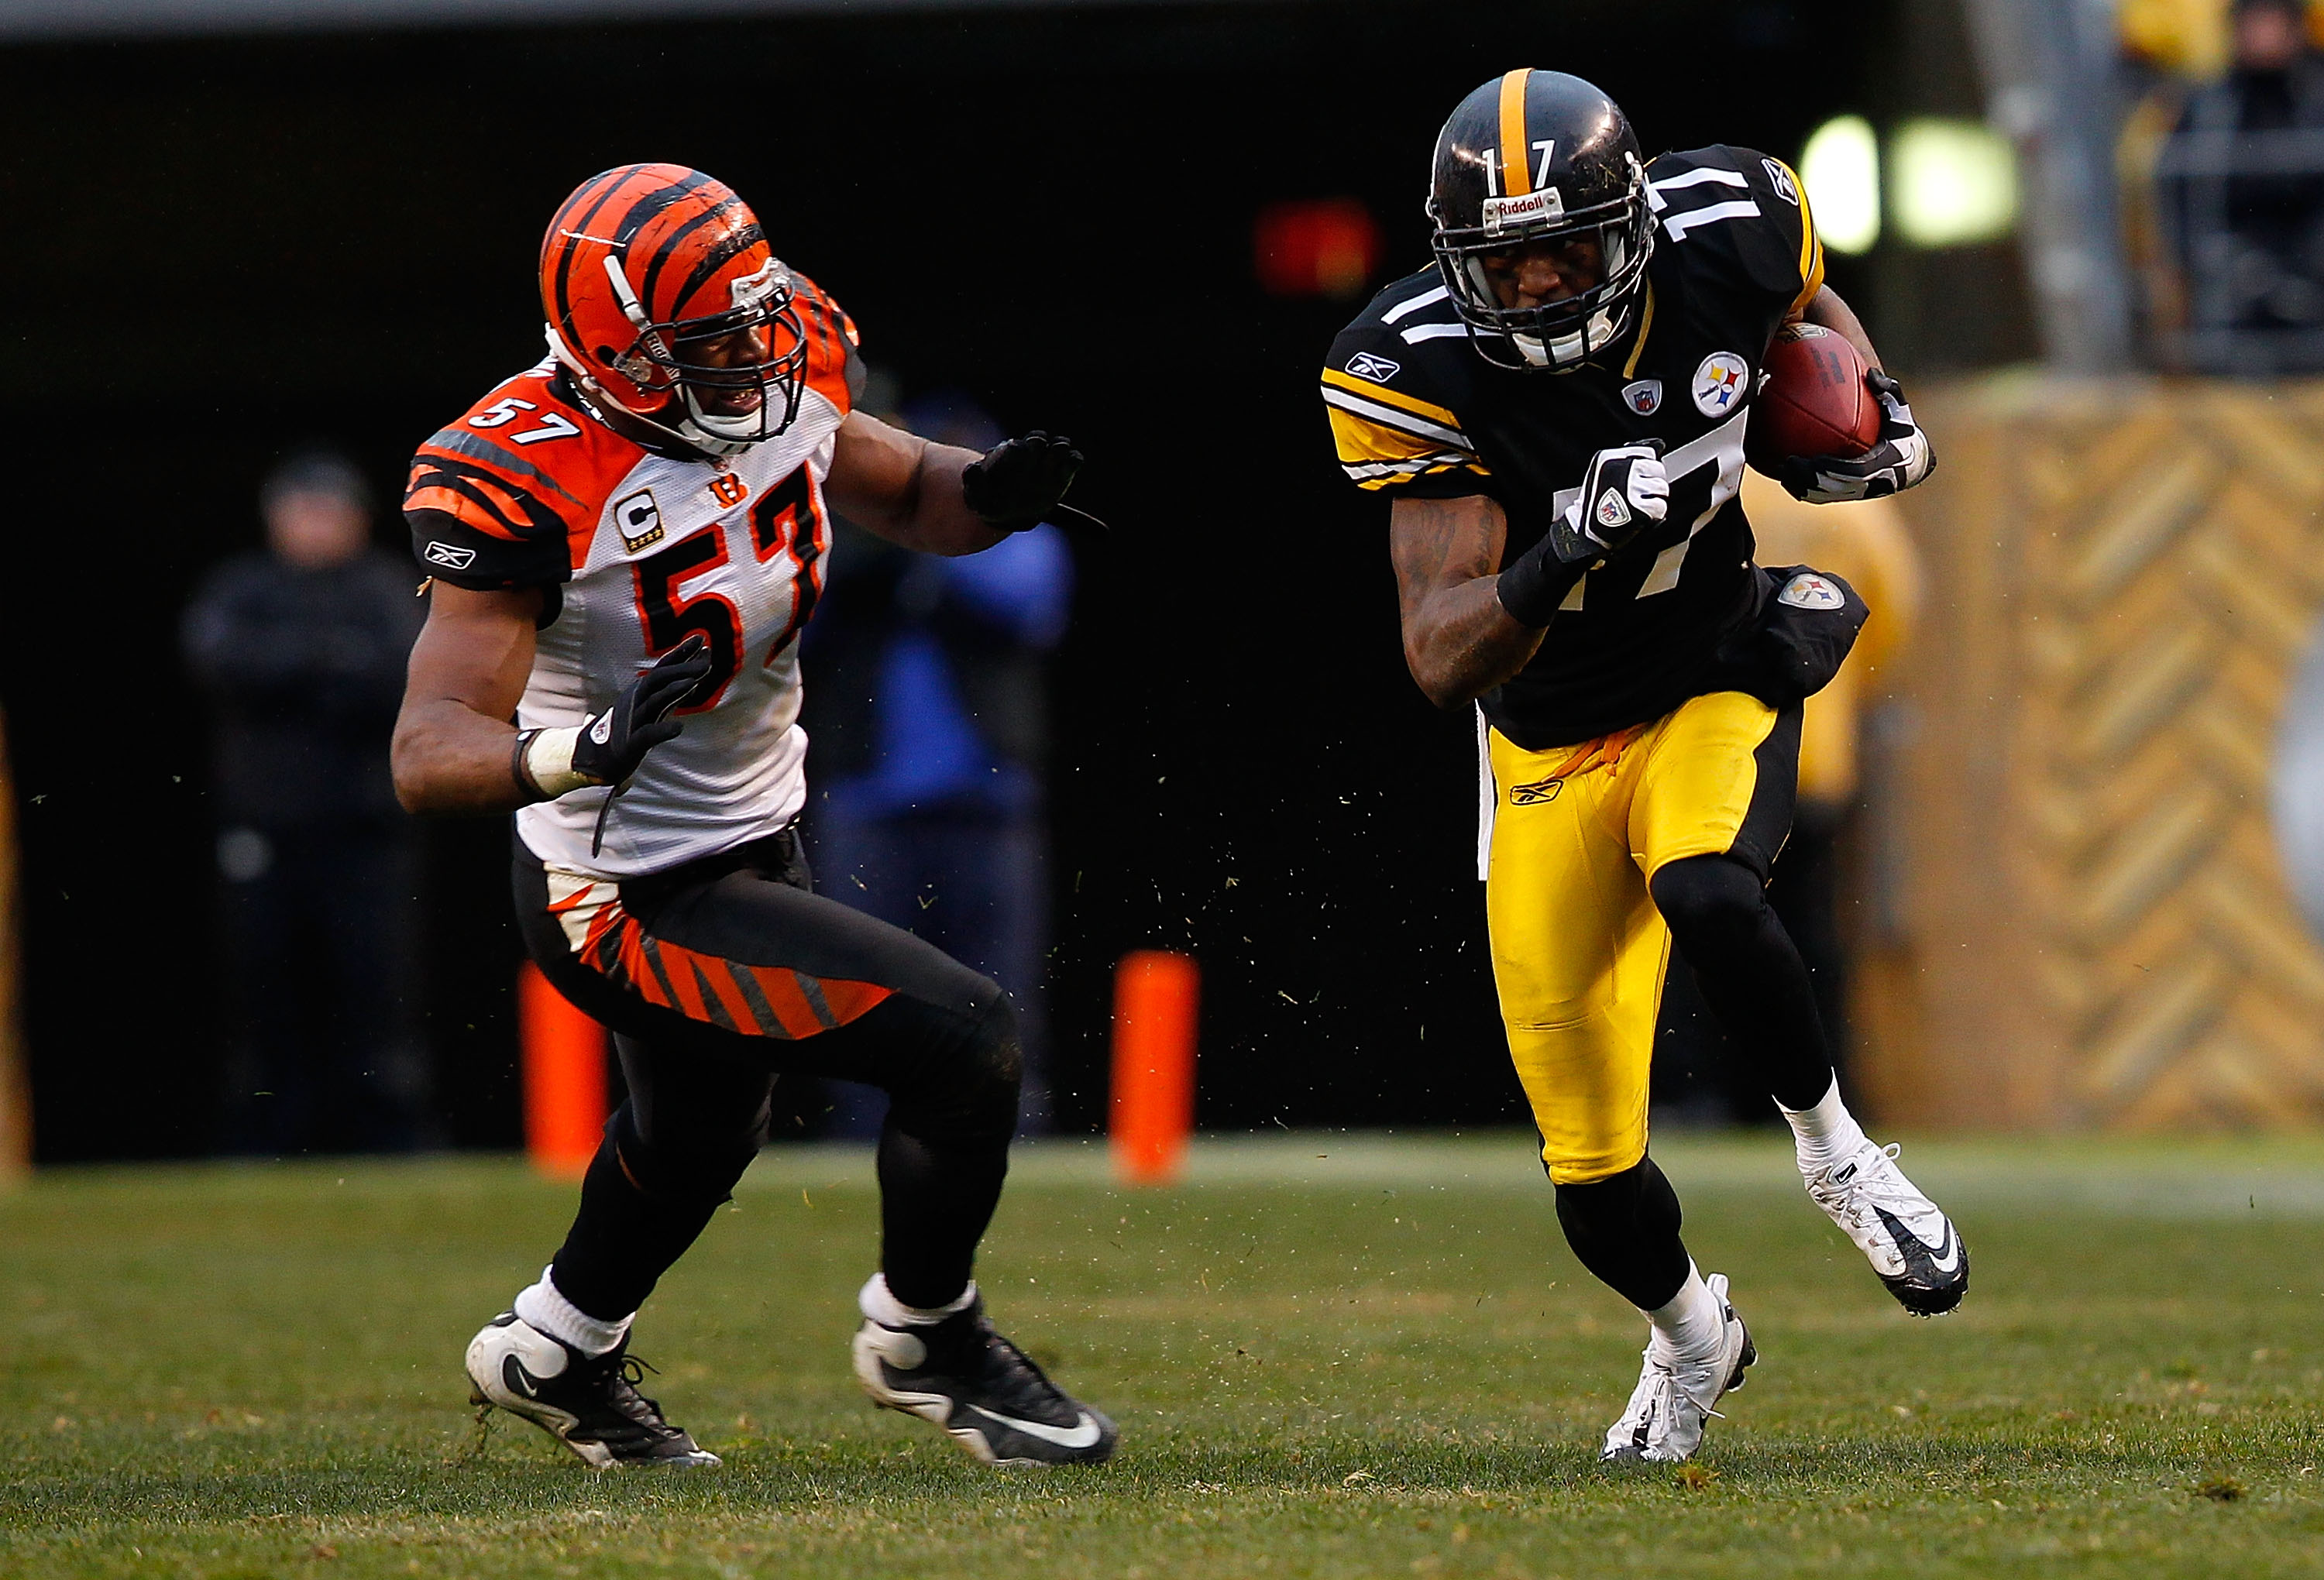 PITTSBURGH - DECEMBER 12:  Mike Wallace #17 of the Pittsburgh Steelers runs with the ball in front of Dhani Jones #57 of the Cincinnati Bengals during the game on December 12, 2010 at Heinz Field in Pittsburgh, Pennsylvania.  (Photo by Jared Wickerham/Get